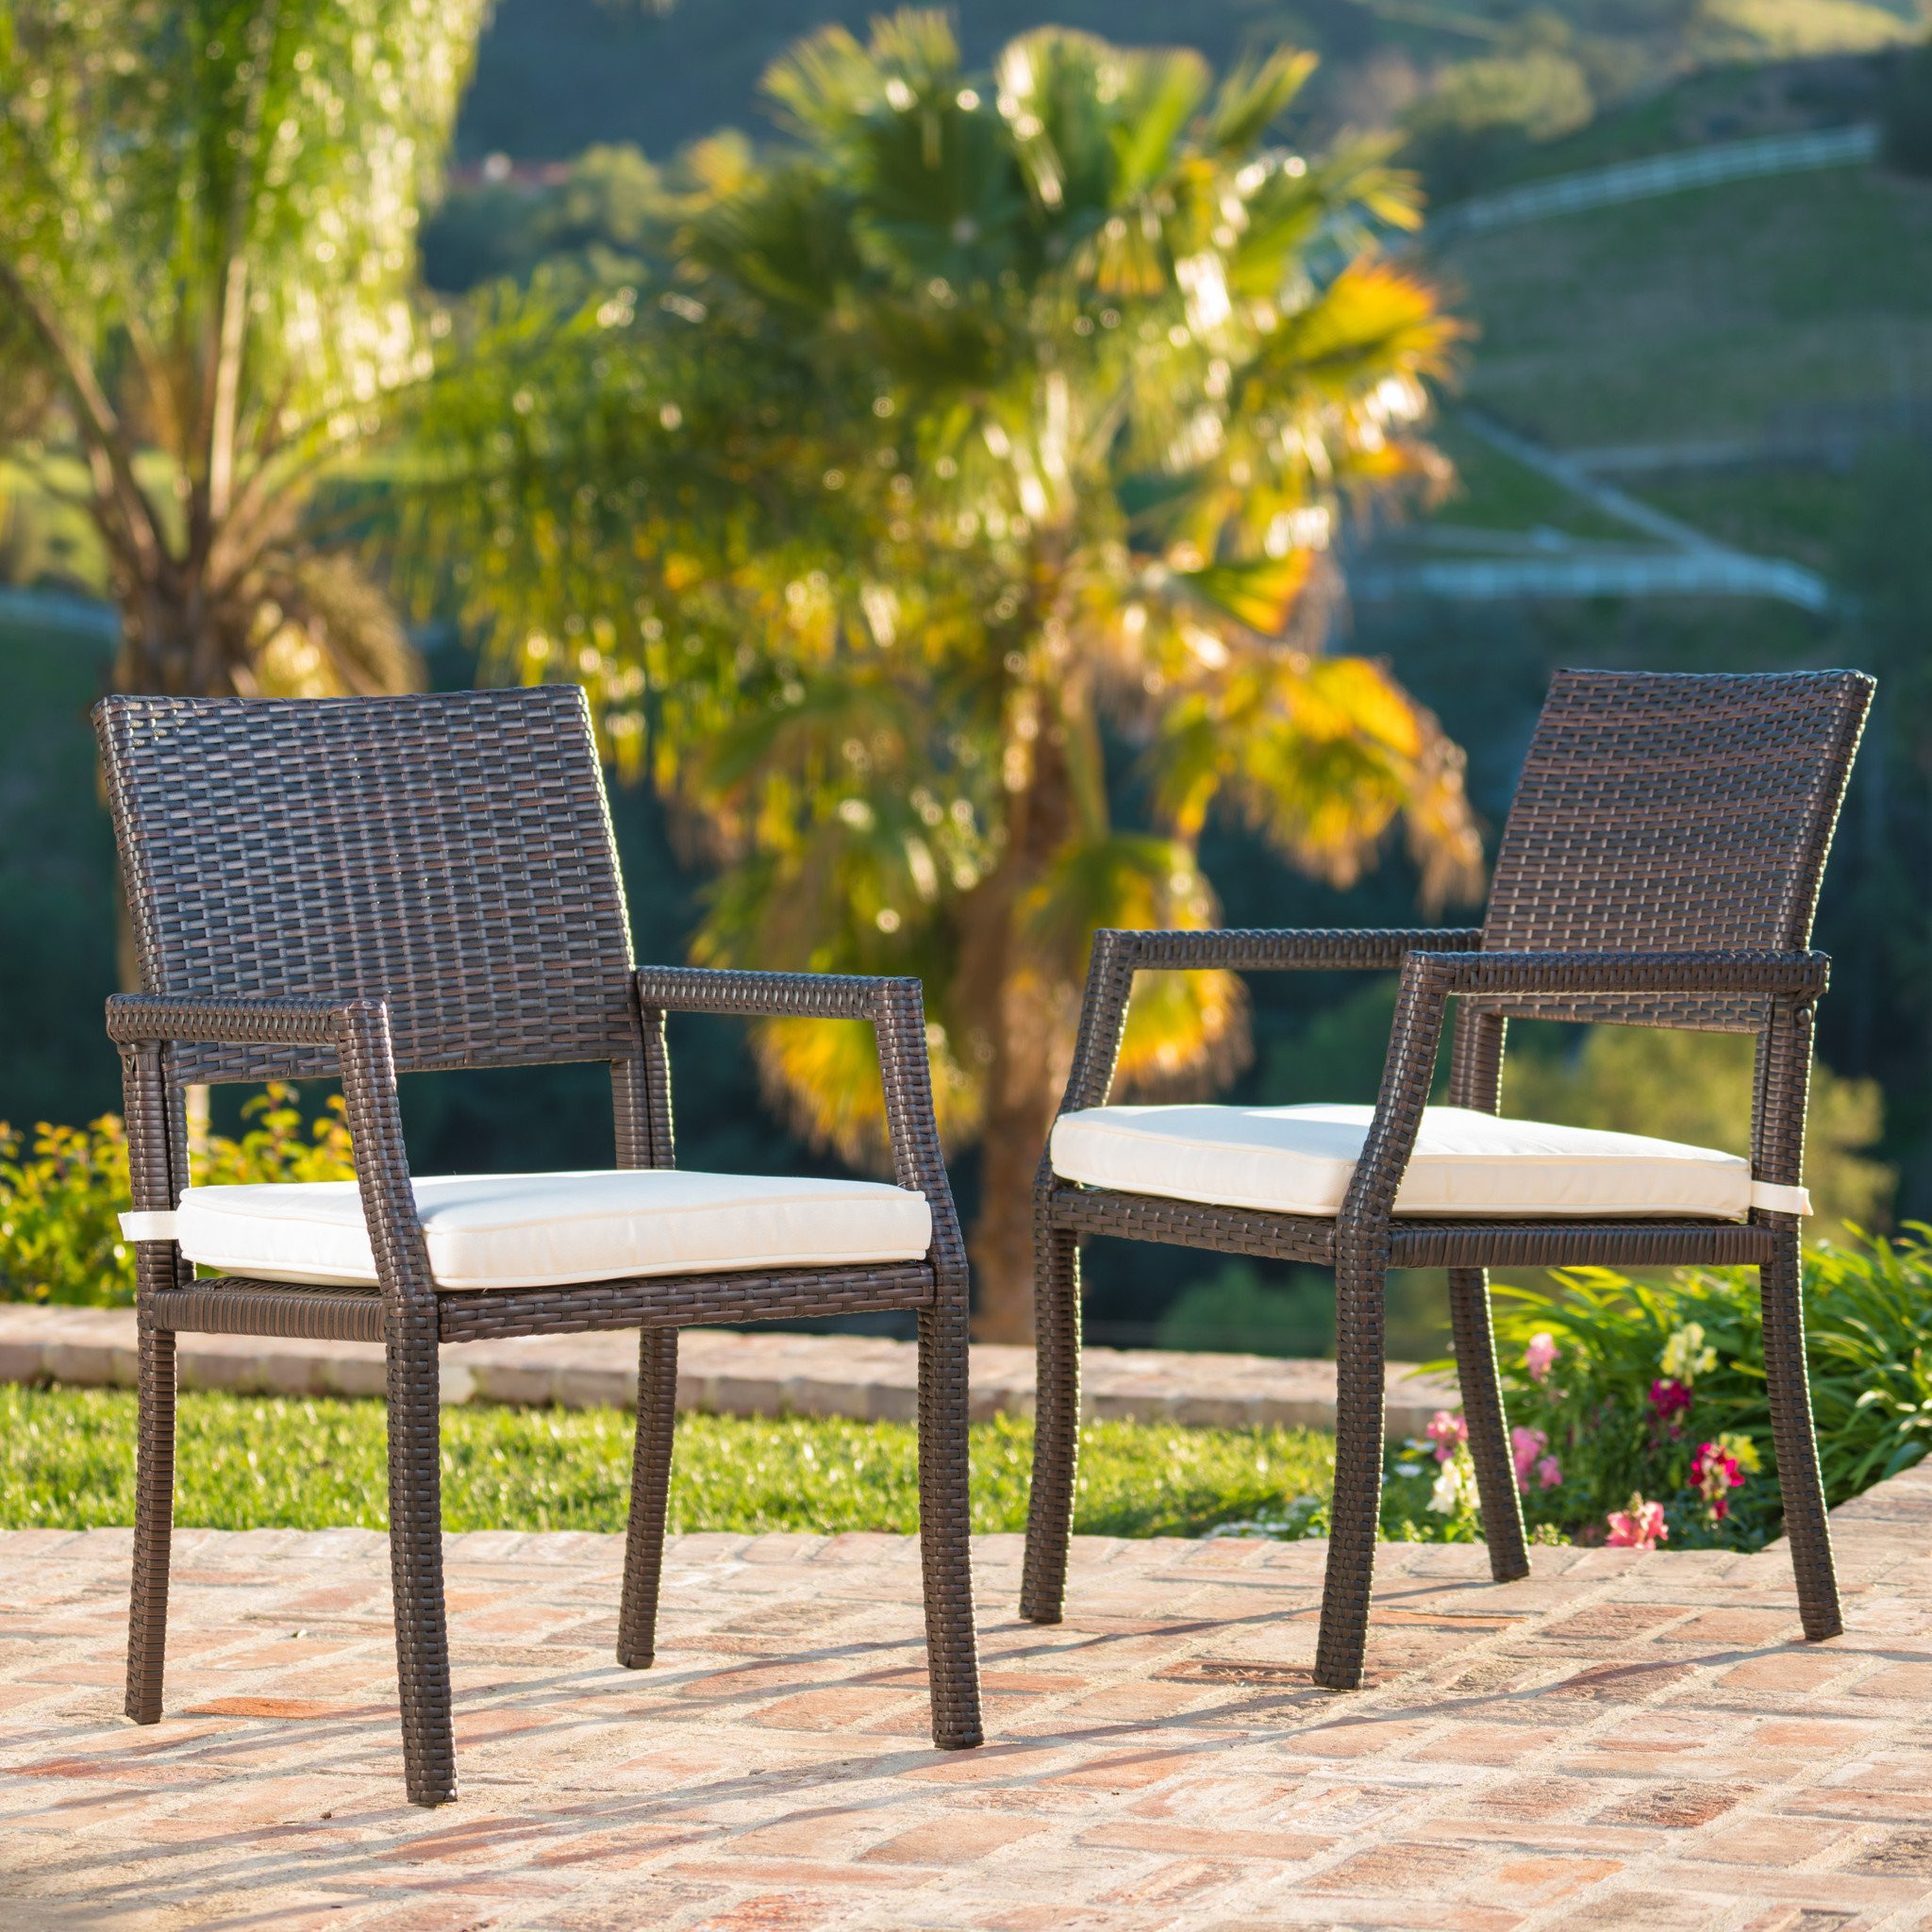 Edene Outdoor Wicker Dining Chairs Water Resistant...